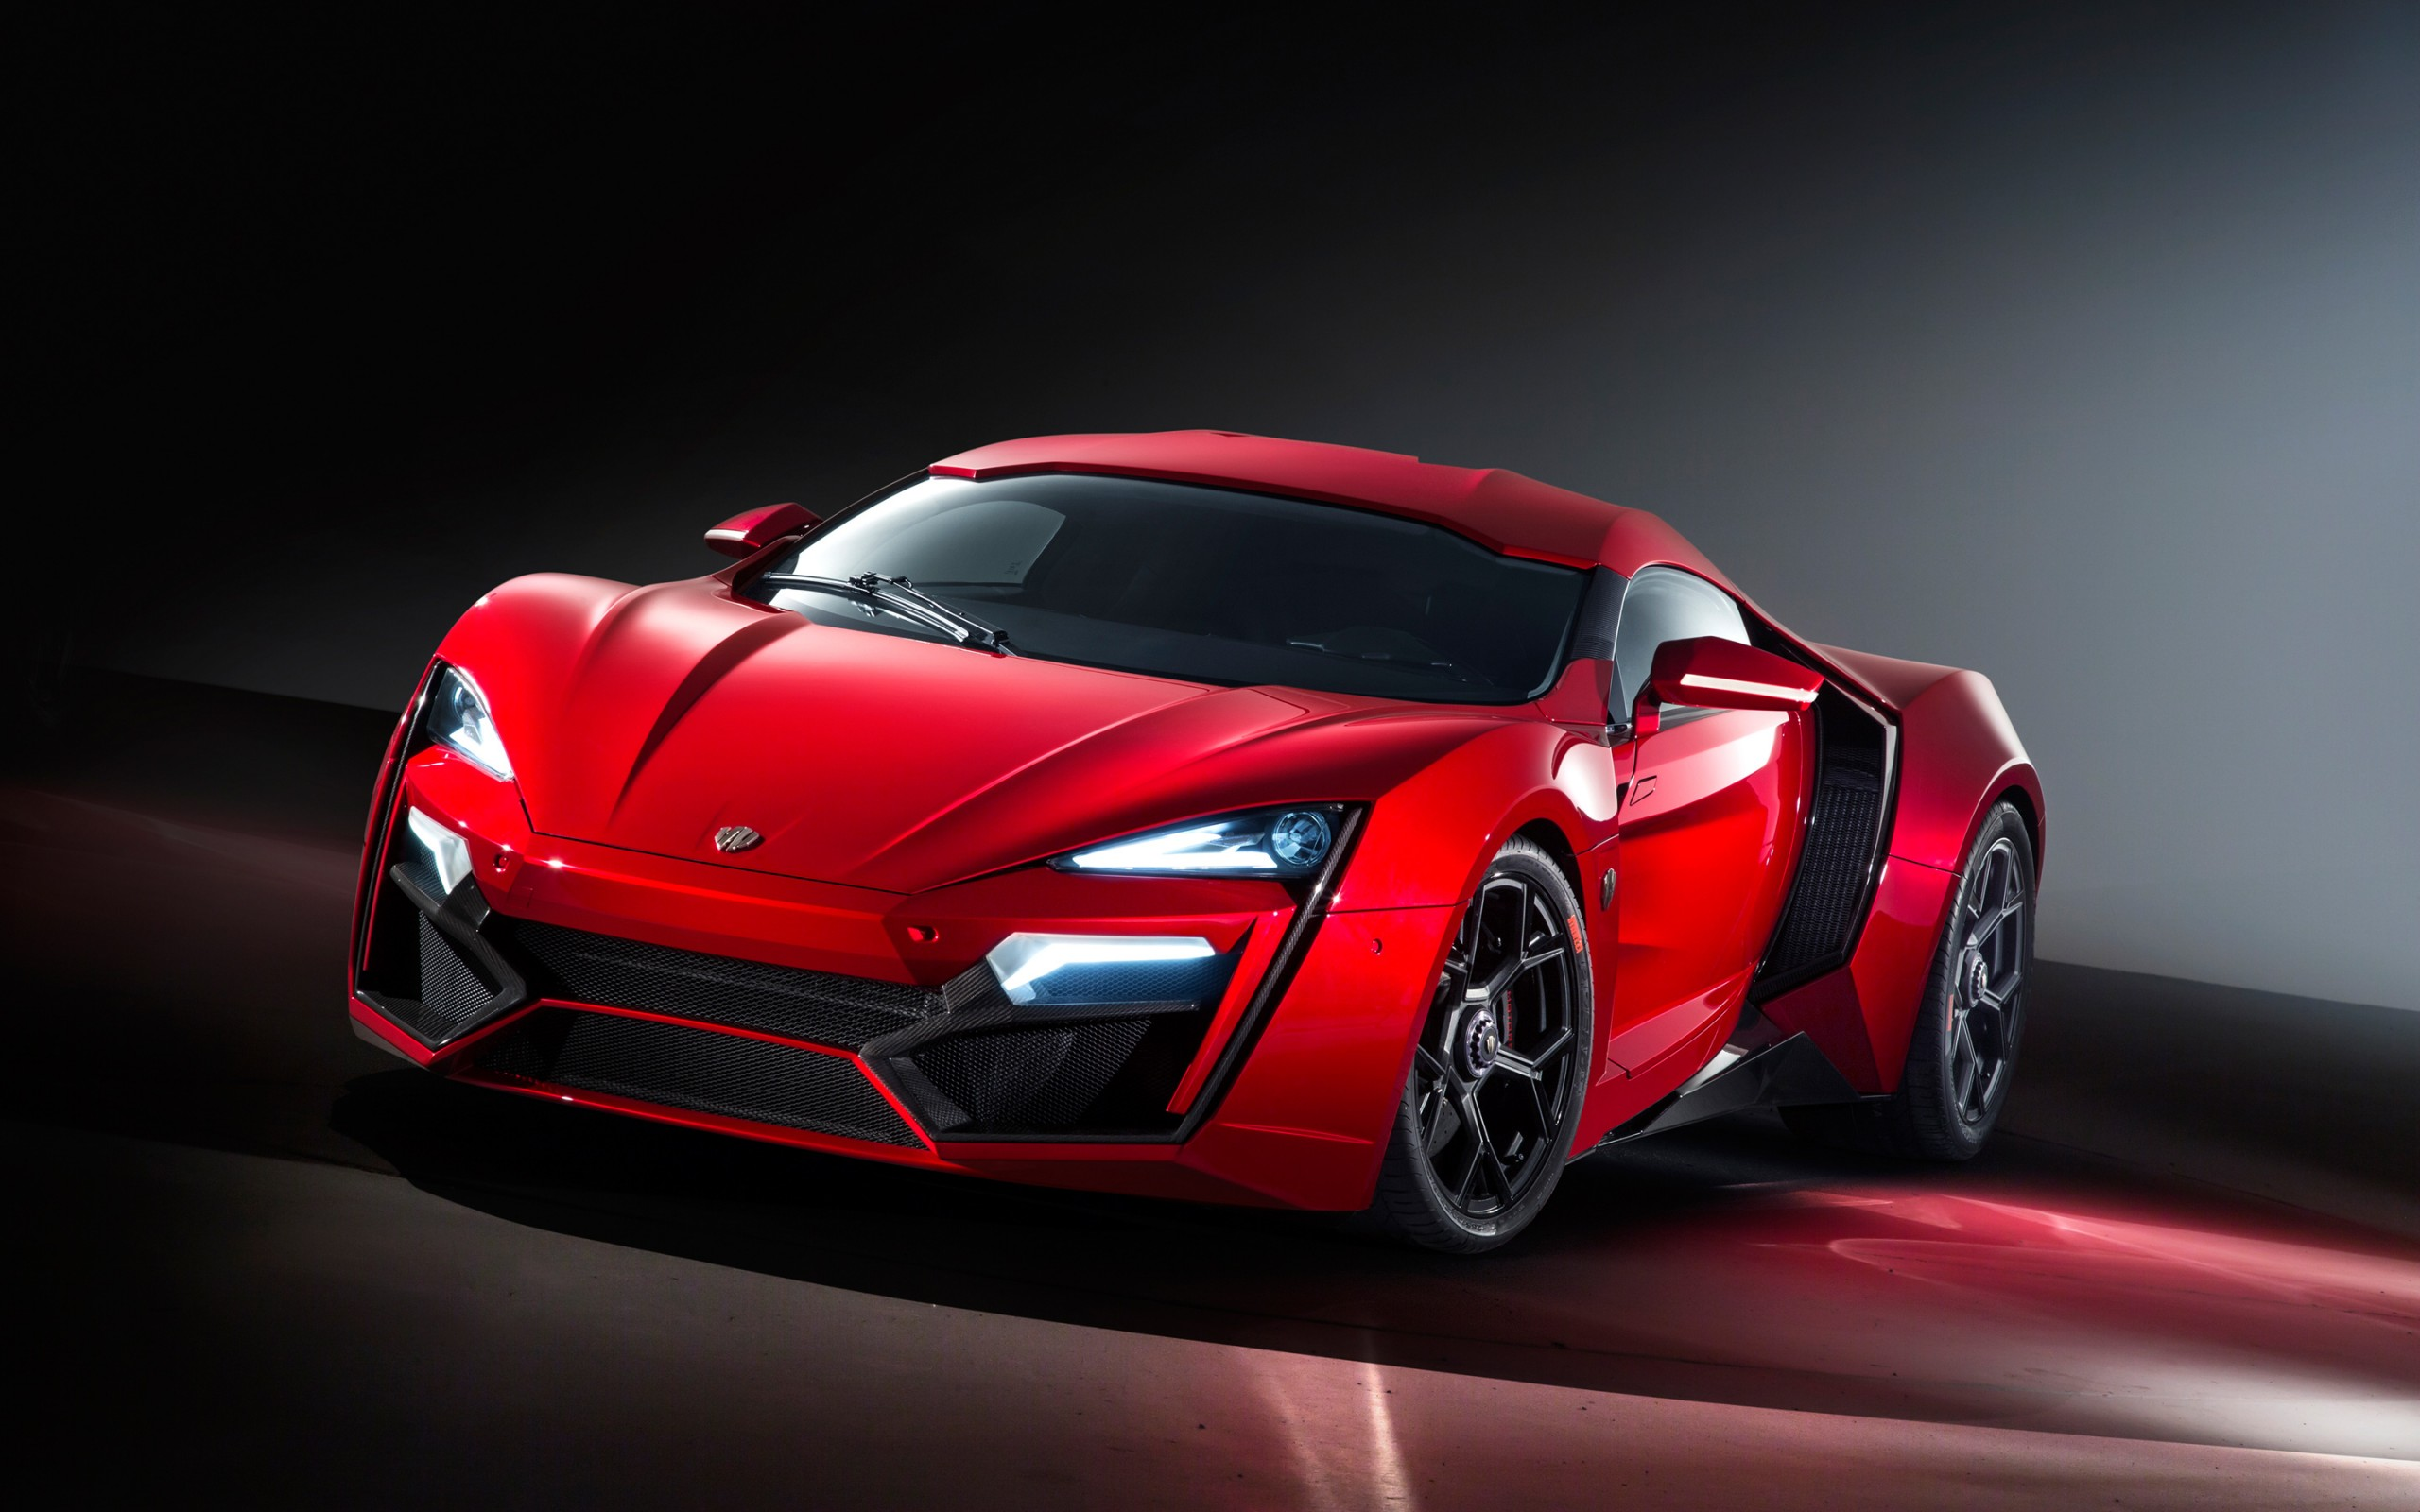 2017 W Motors Lykan Hypersport Wallpaper | HD Car Wallpapers